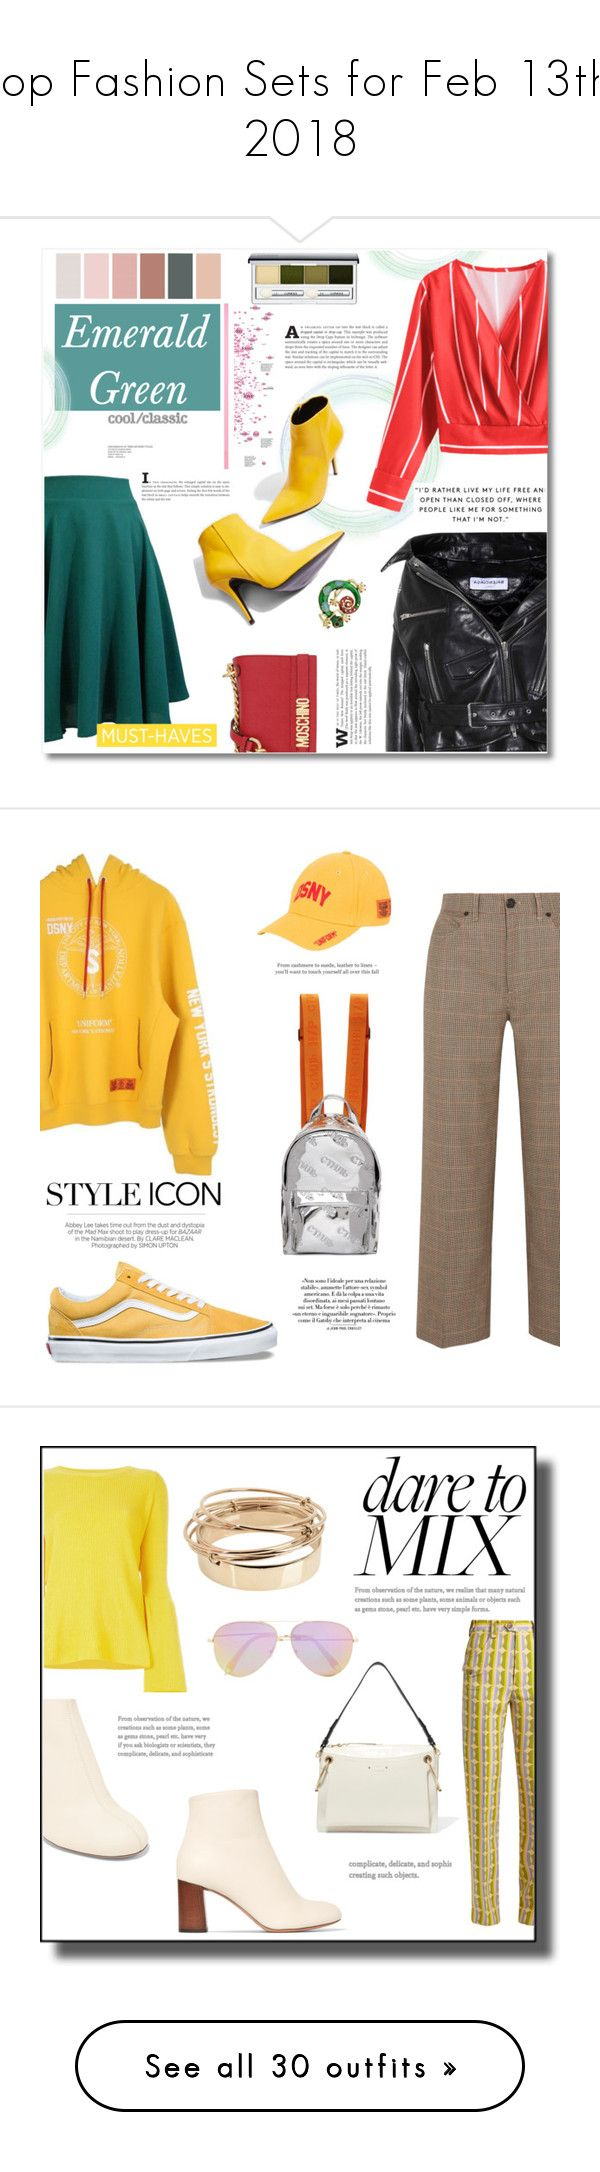 """Top Fashion Sets for Feb 13th, 2018"" by polyvore ❤ liked on Polyvore featuring Topshop, Balenciaga, Moschino, Clinique, modern, rag & bone, Heron Preston, Vans, Kershaw and Vanity Fair"